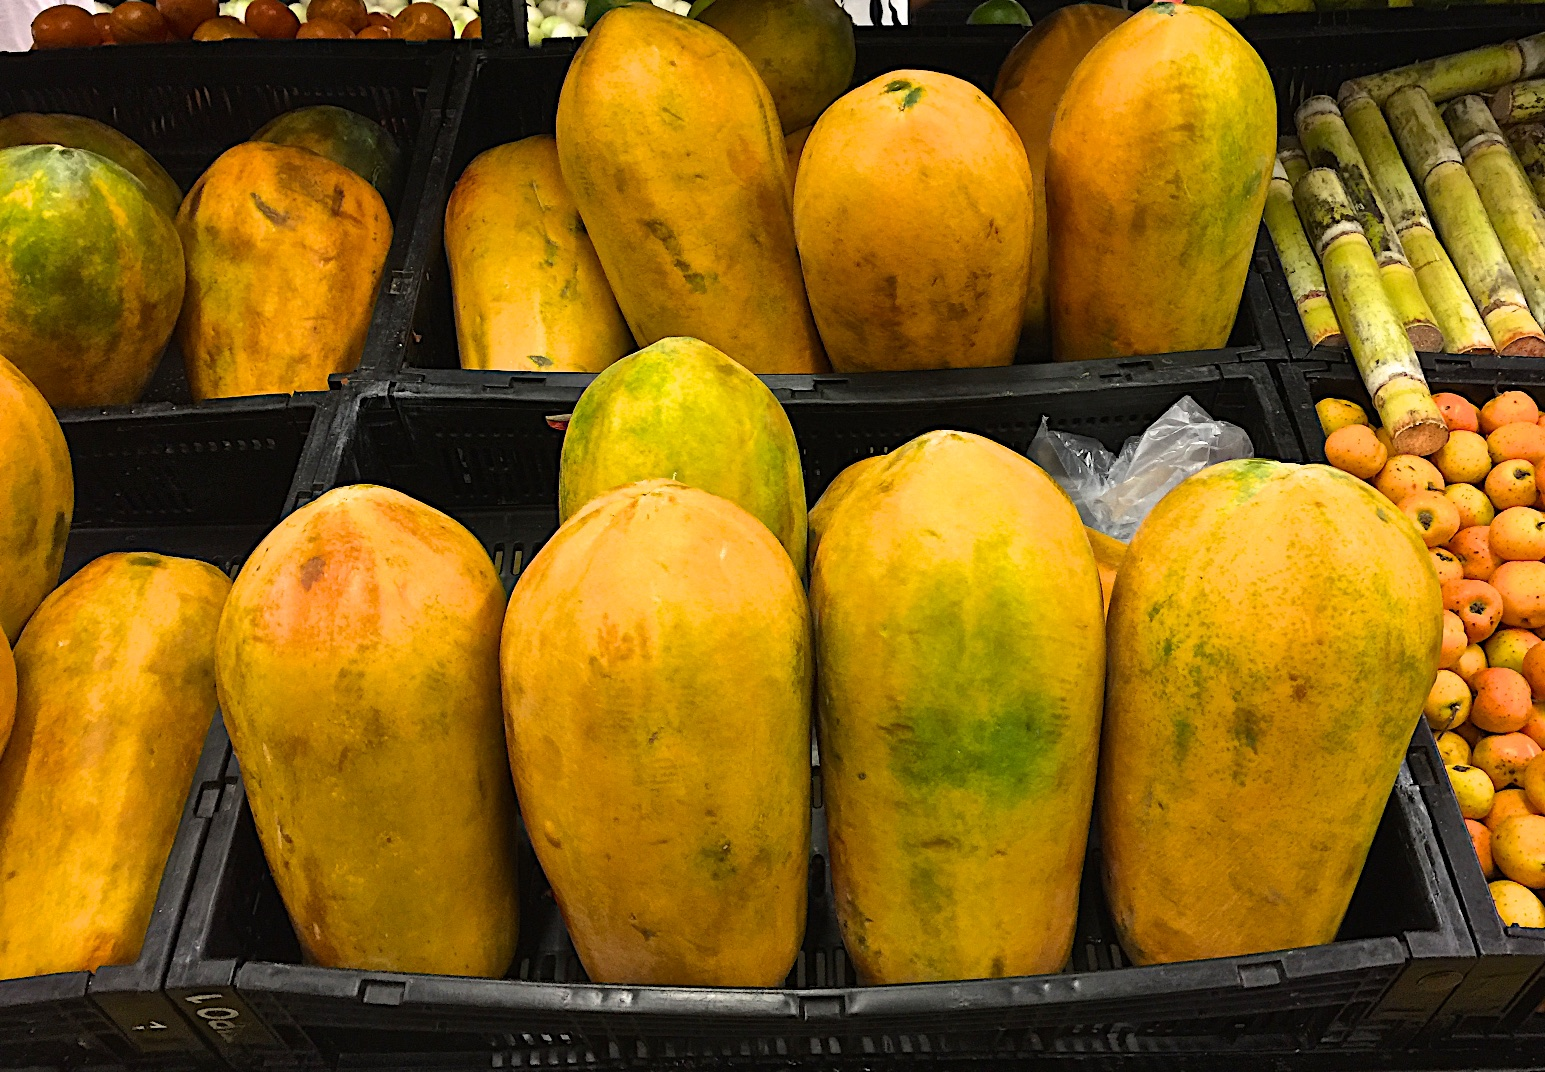 Mexican papayas